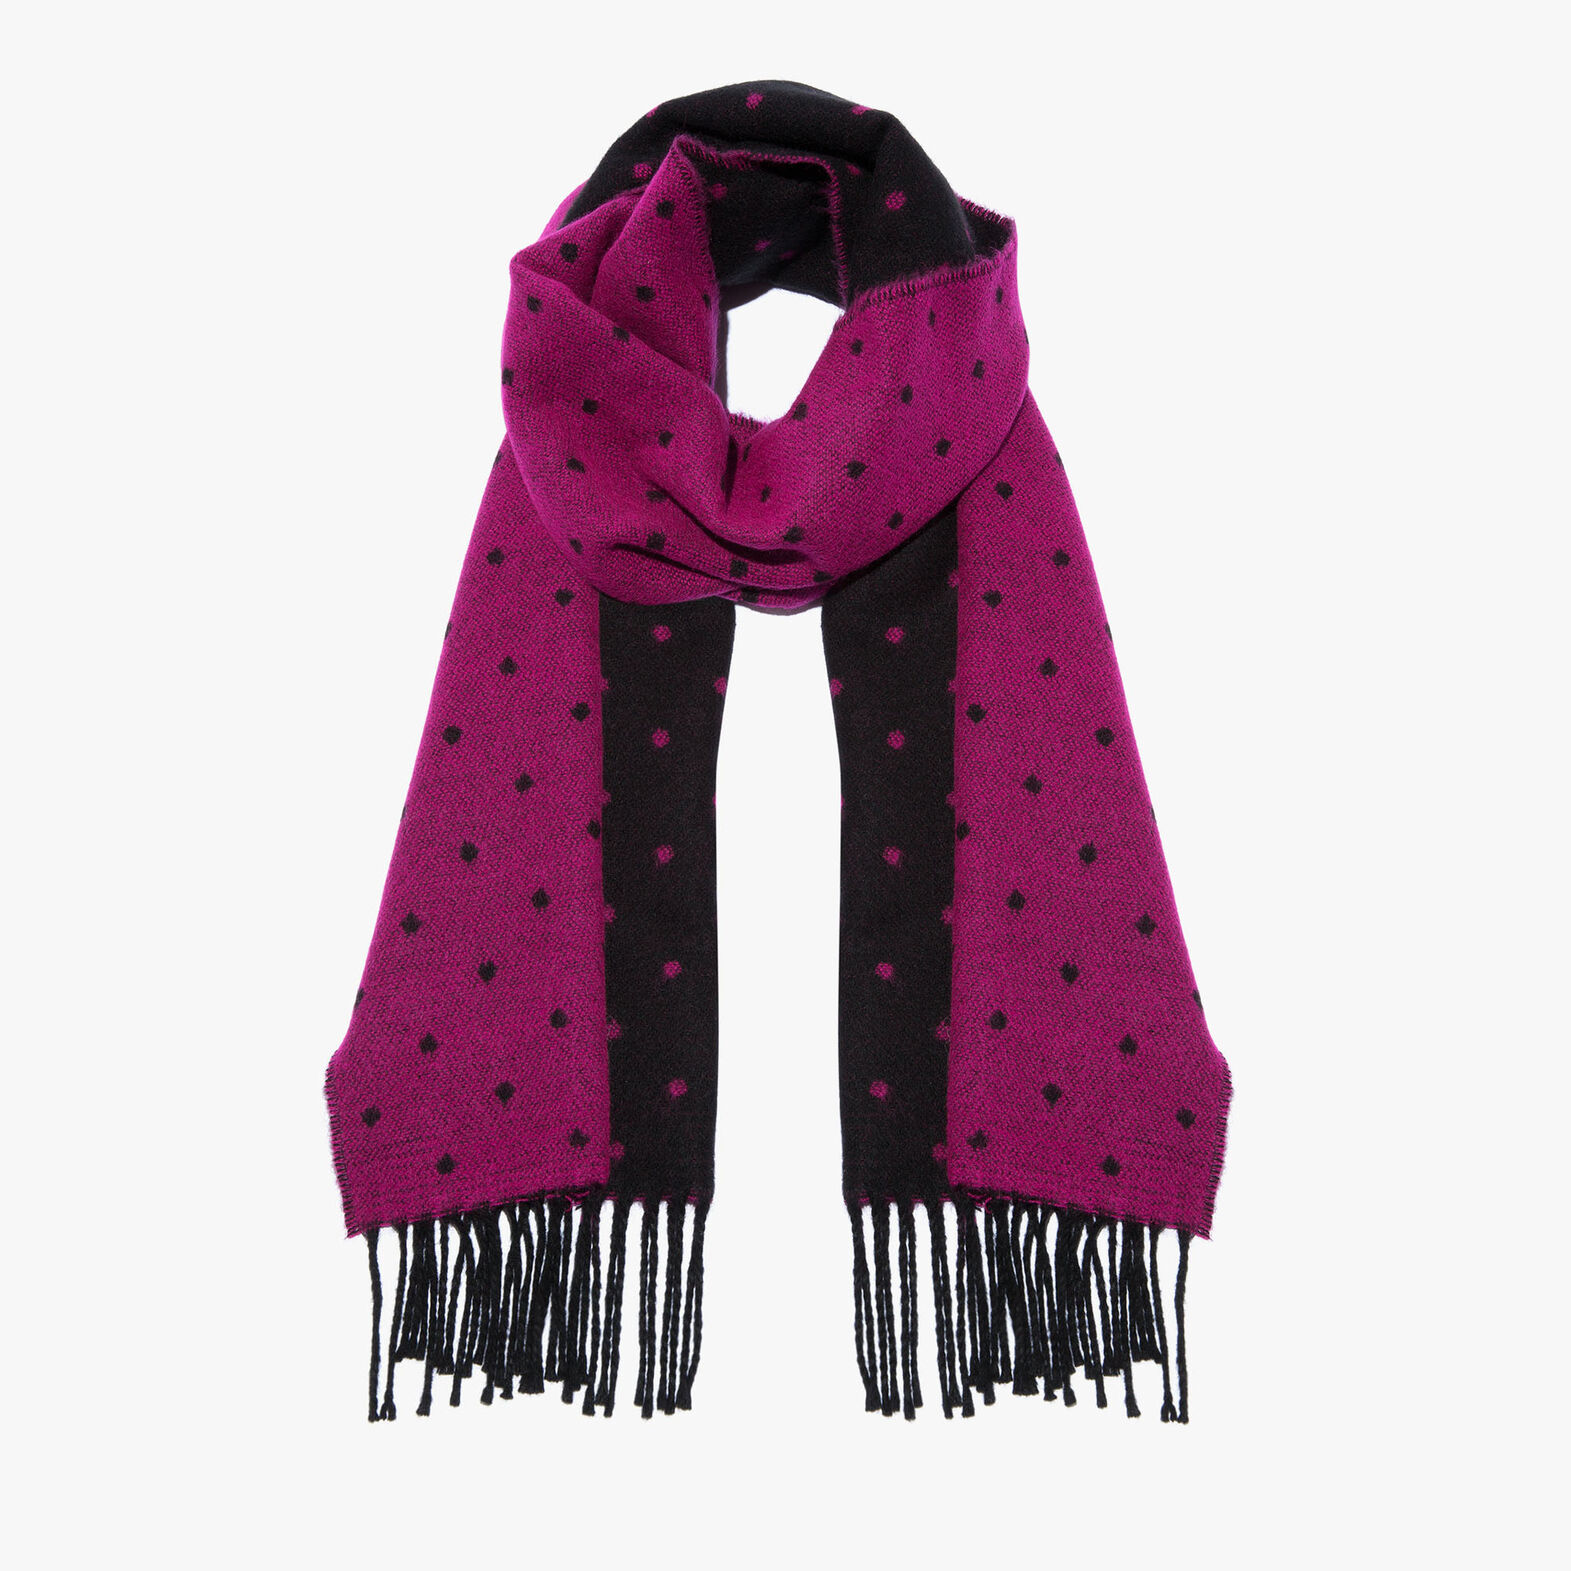 Coccinelle Acrylic scarf